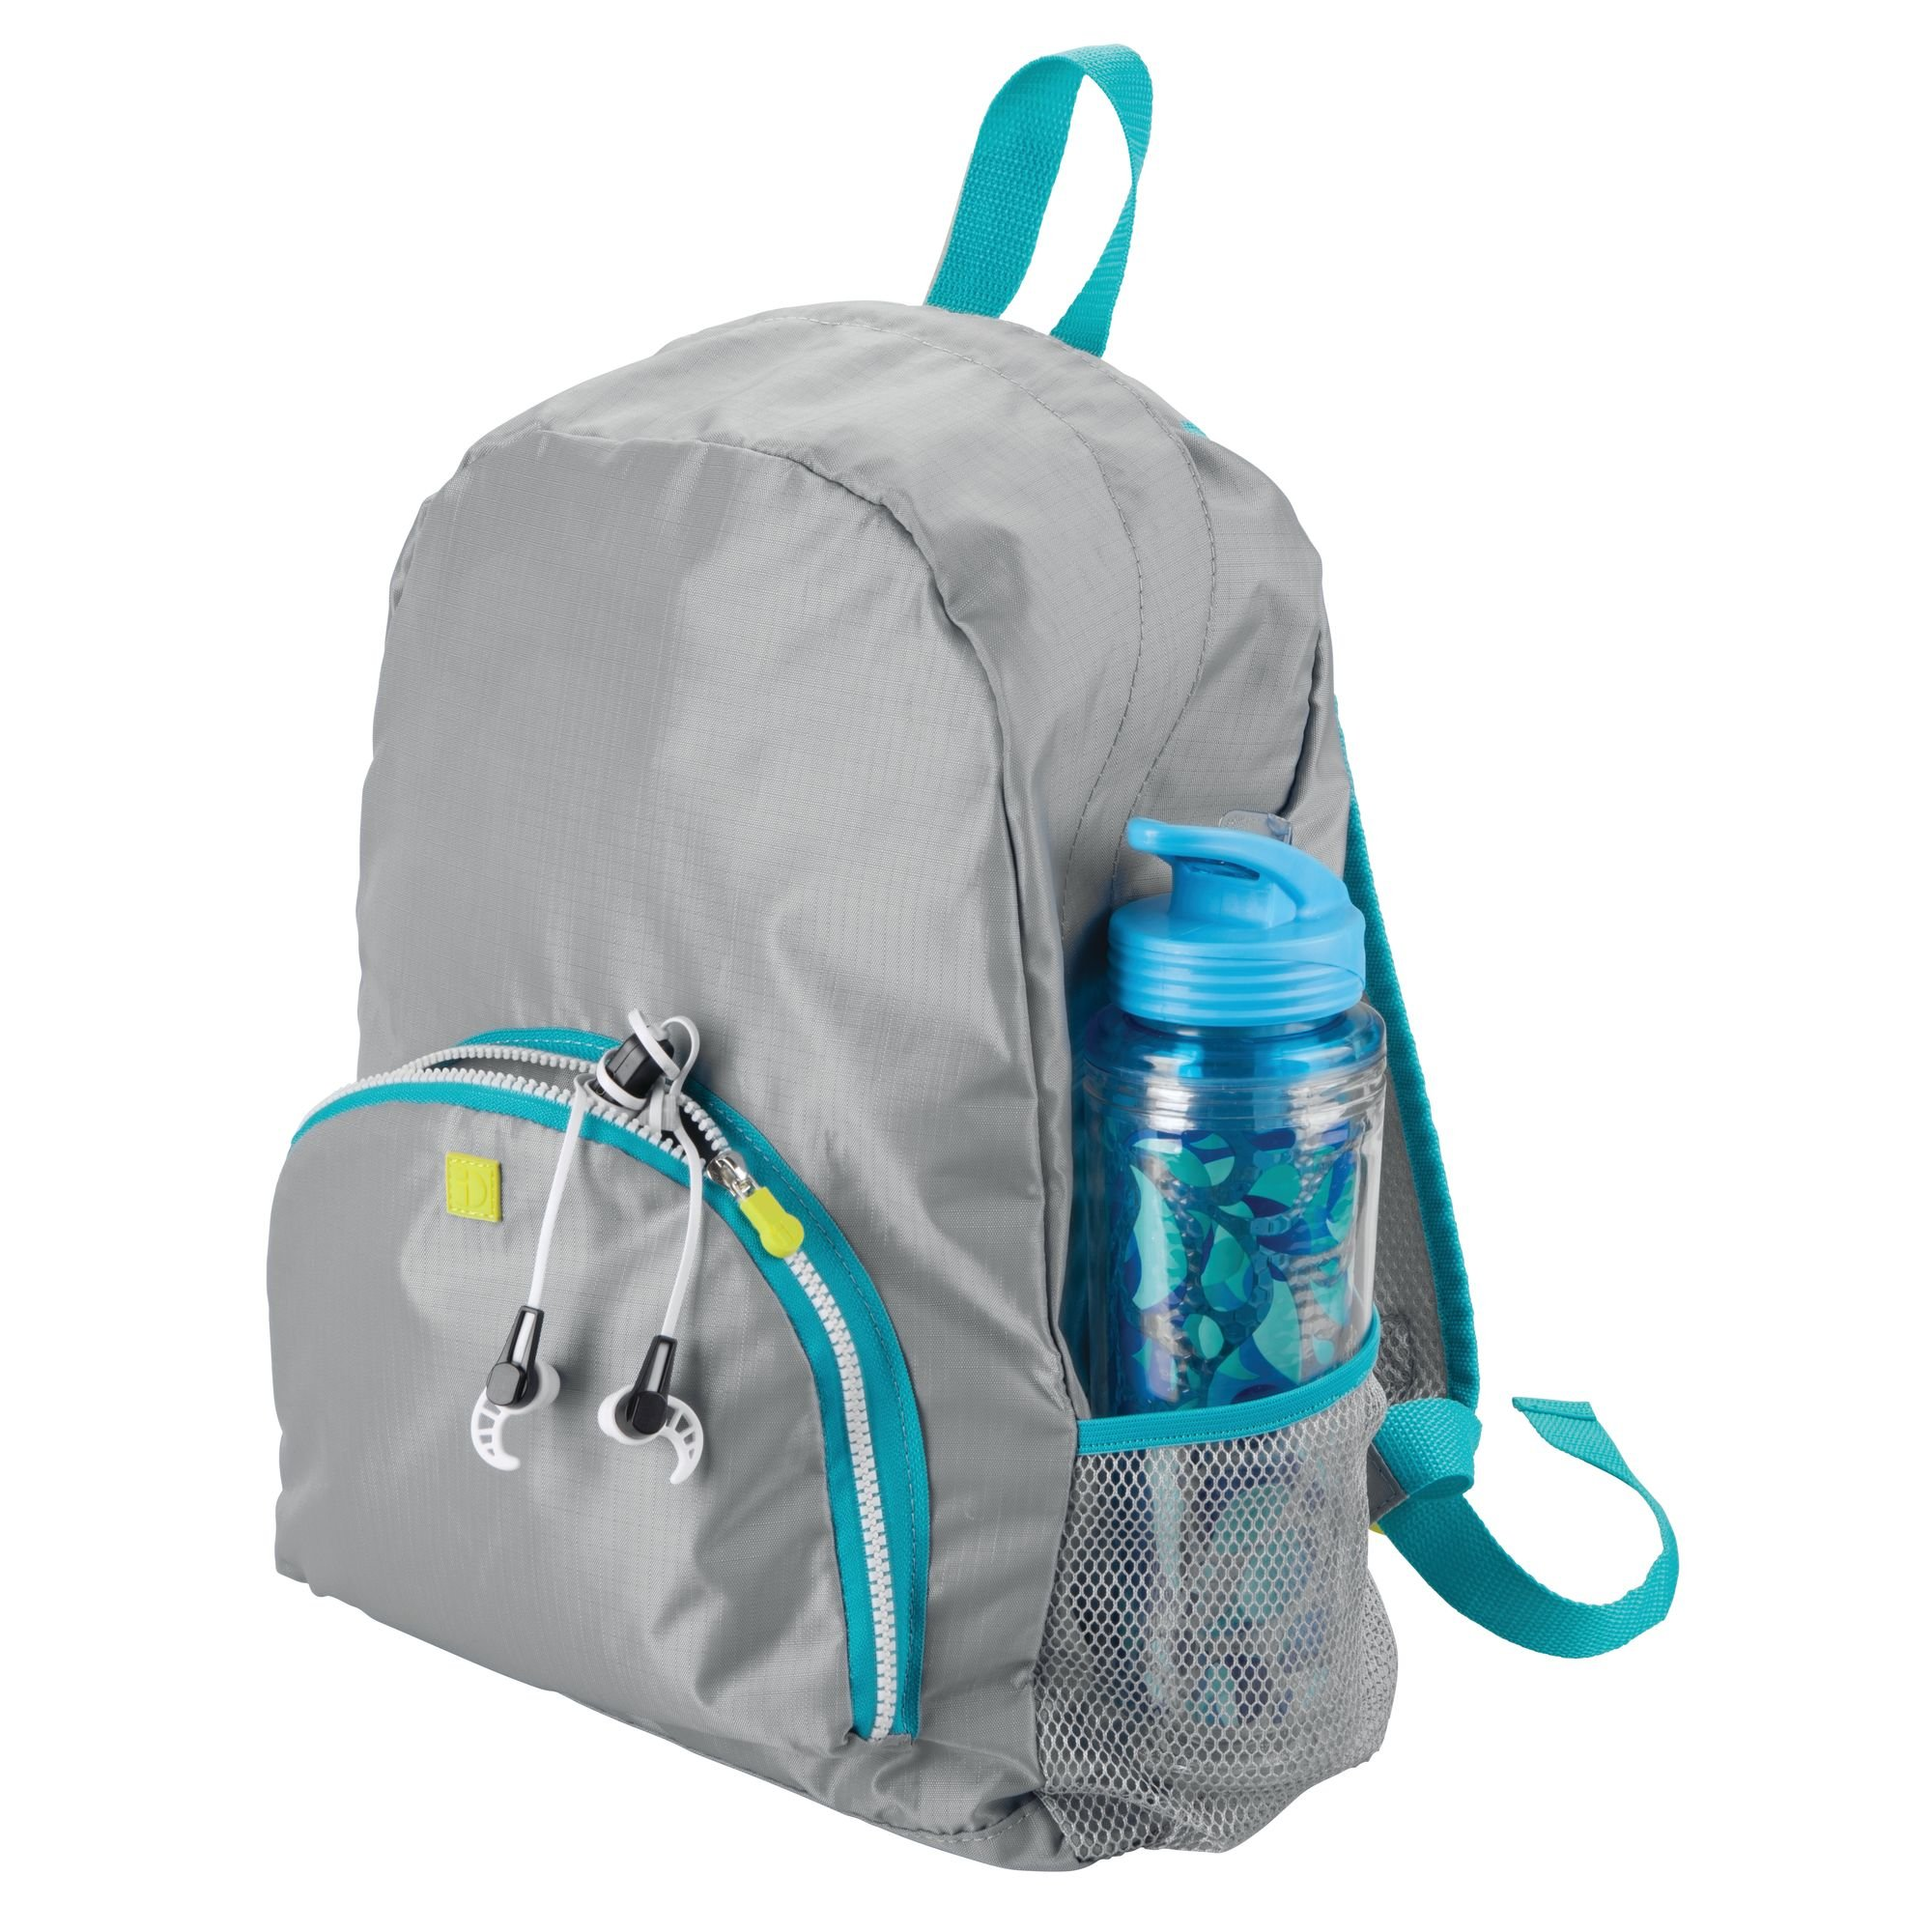 mDesign Lightweight Collapsible Travel Backpack: Top Handle, Adjustable Mesh-Lined Straps and 2-Way Zipper: Perfect for a Carry On, Duffel Bag, Gym Bag – Gray/Teal Blue Trim with White Zipper